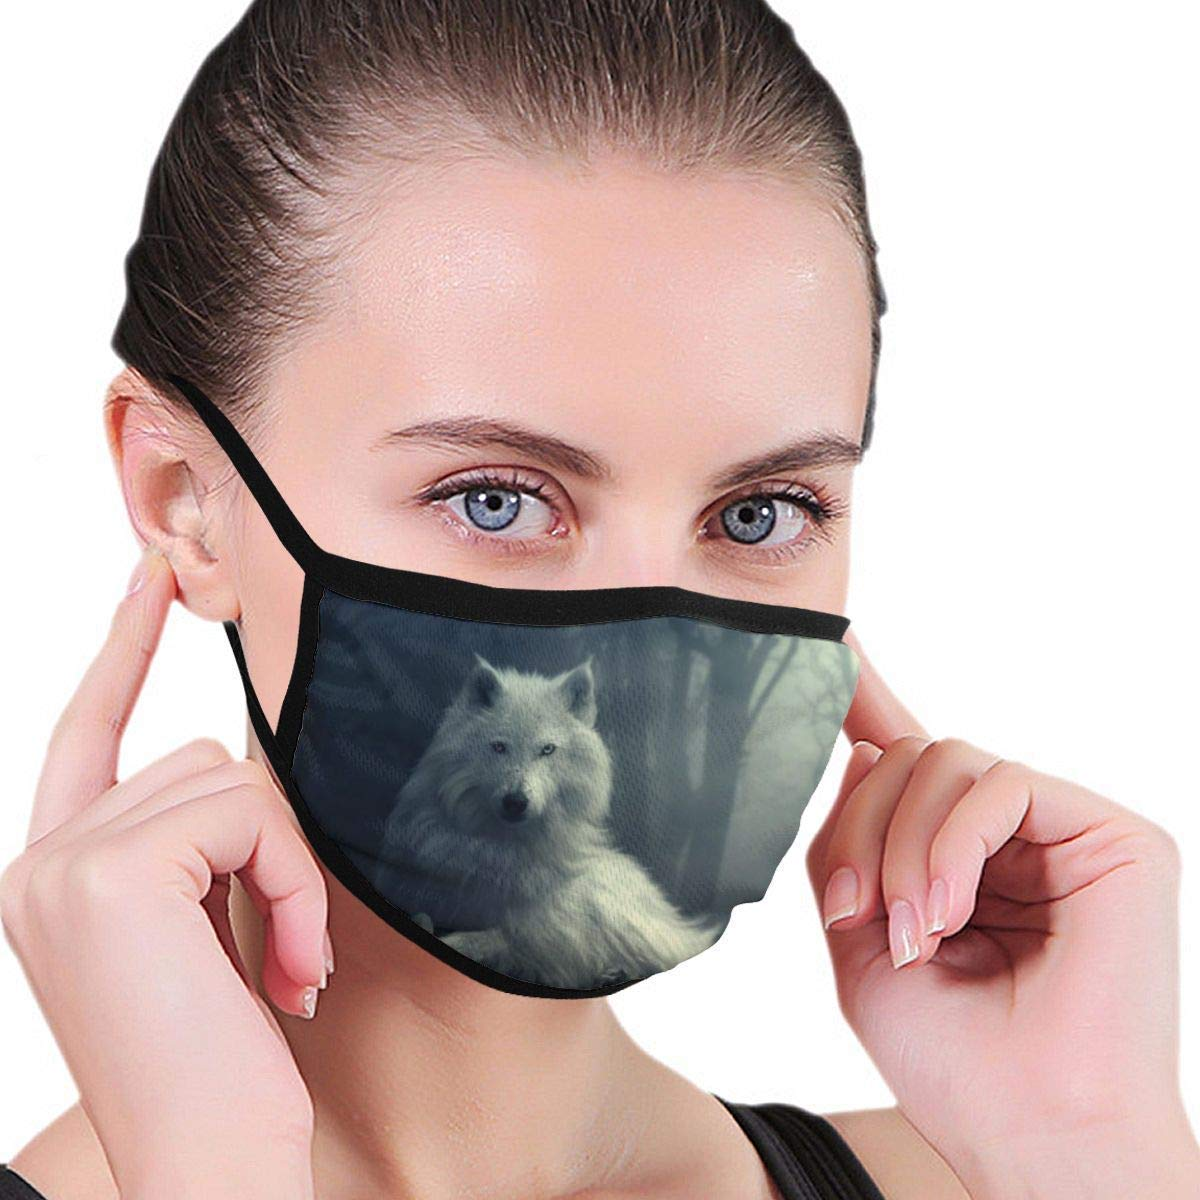 Bdwuhs Mascarillas Bucales Forest Wolf Reusable Insulated Anti Pollution Dust Mask Washable and Reusable Polyester Face Mouth Mask Protection from Flu Germ Pollen Allergy Respirator Mask